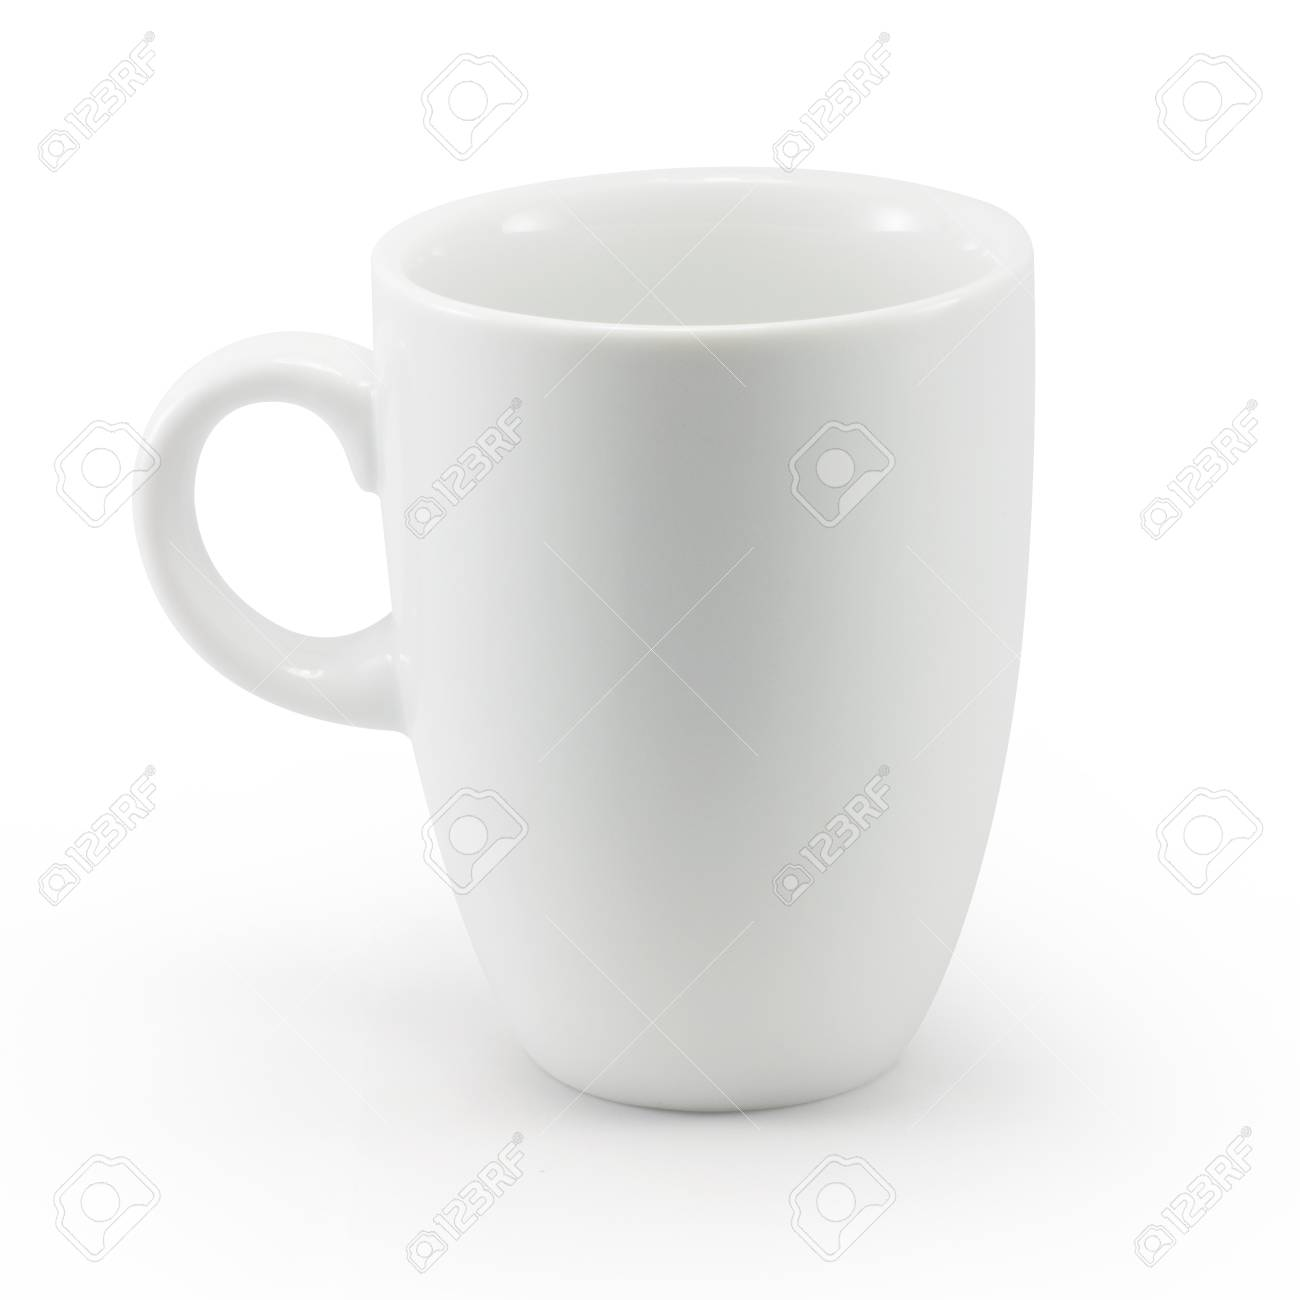 White cup isolated with clipping path - 15930649